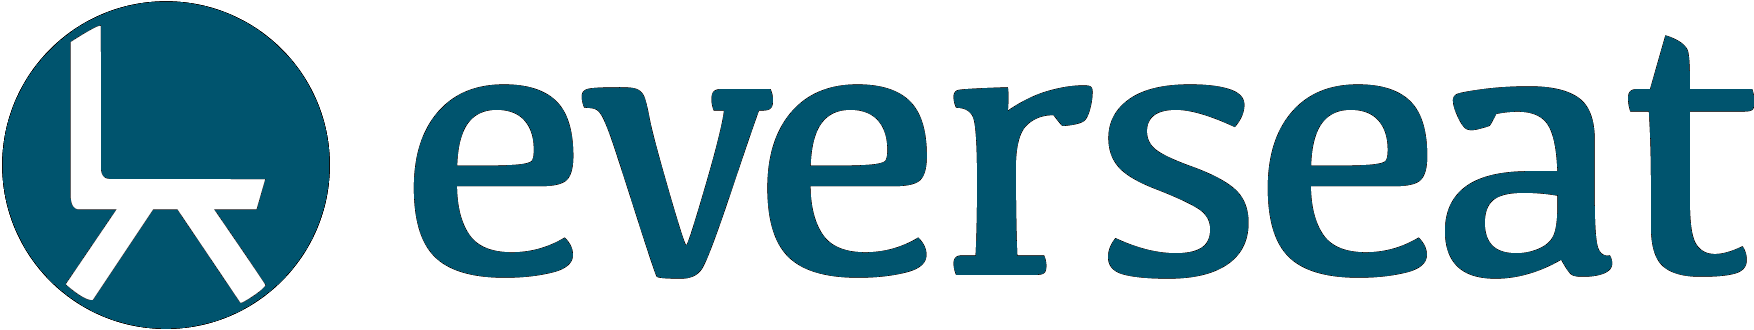 Everseat logo